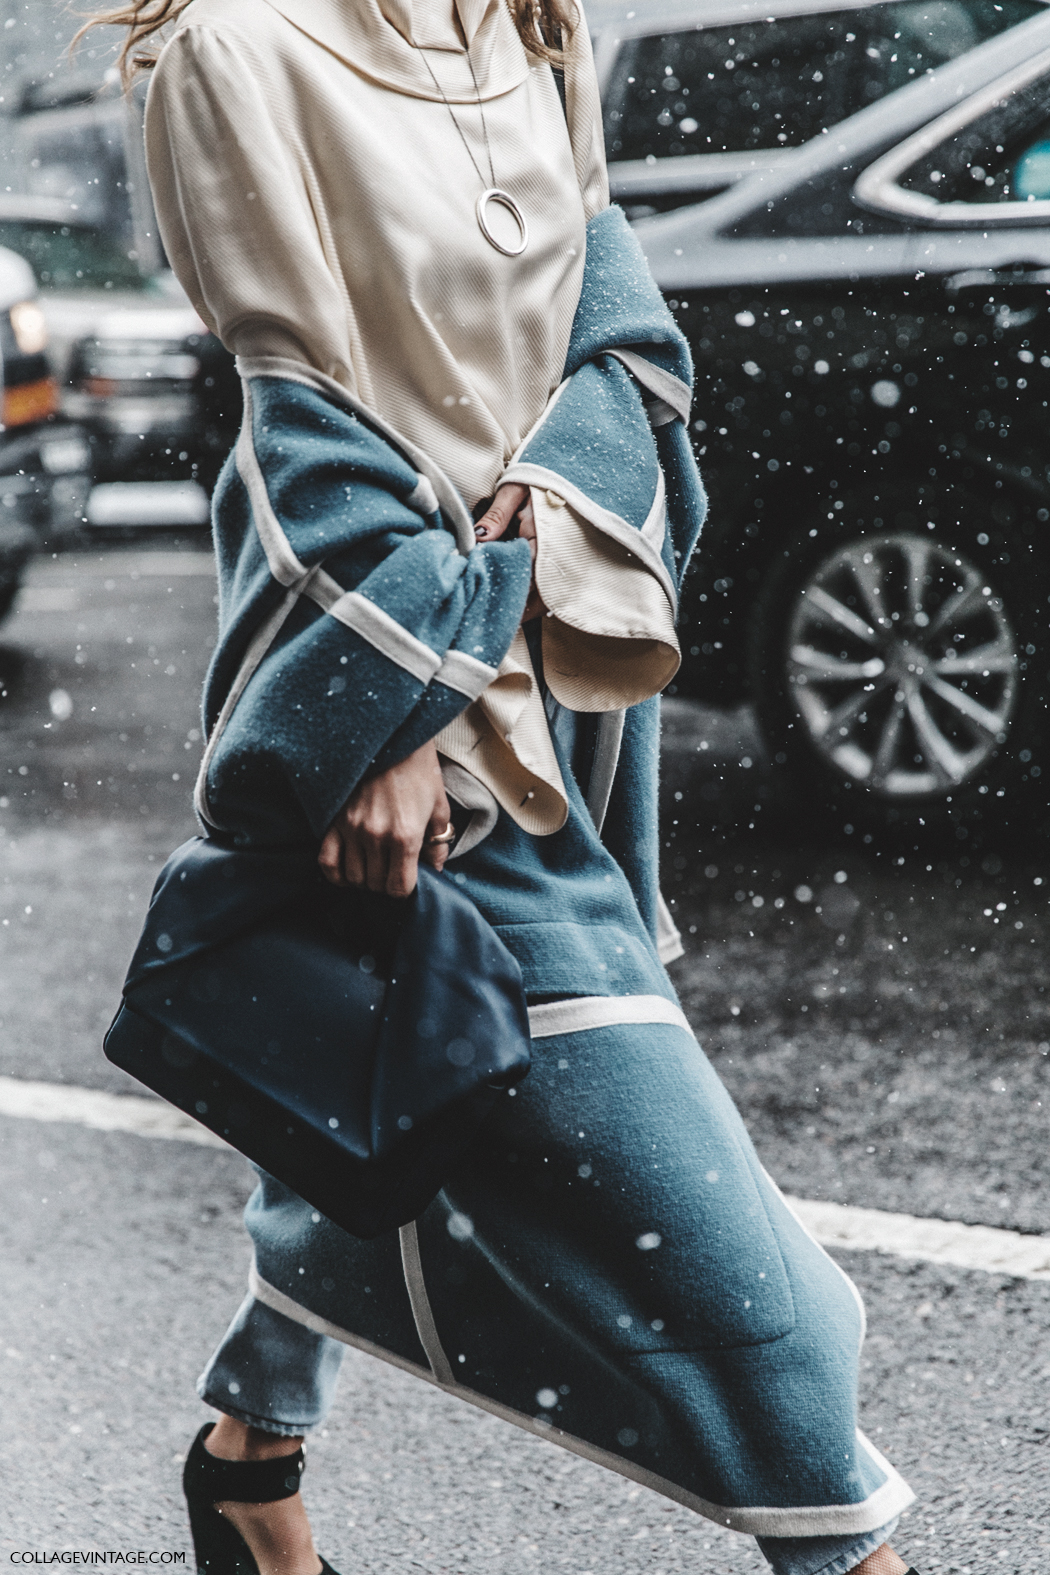 NYFW-New_York_Fashion_Week-Fall_Winter-17-Street_Style-Chloe_Cape-JW_Anderson_Bag-Celine_Shoes-Courtney_trop-1